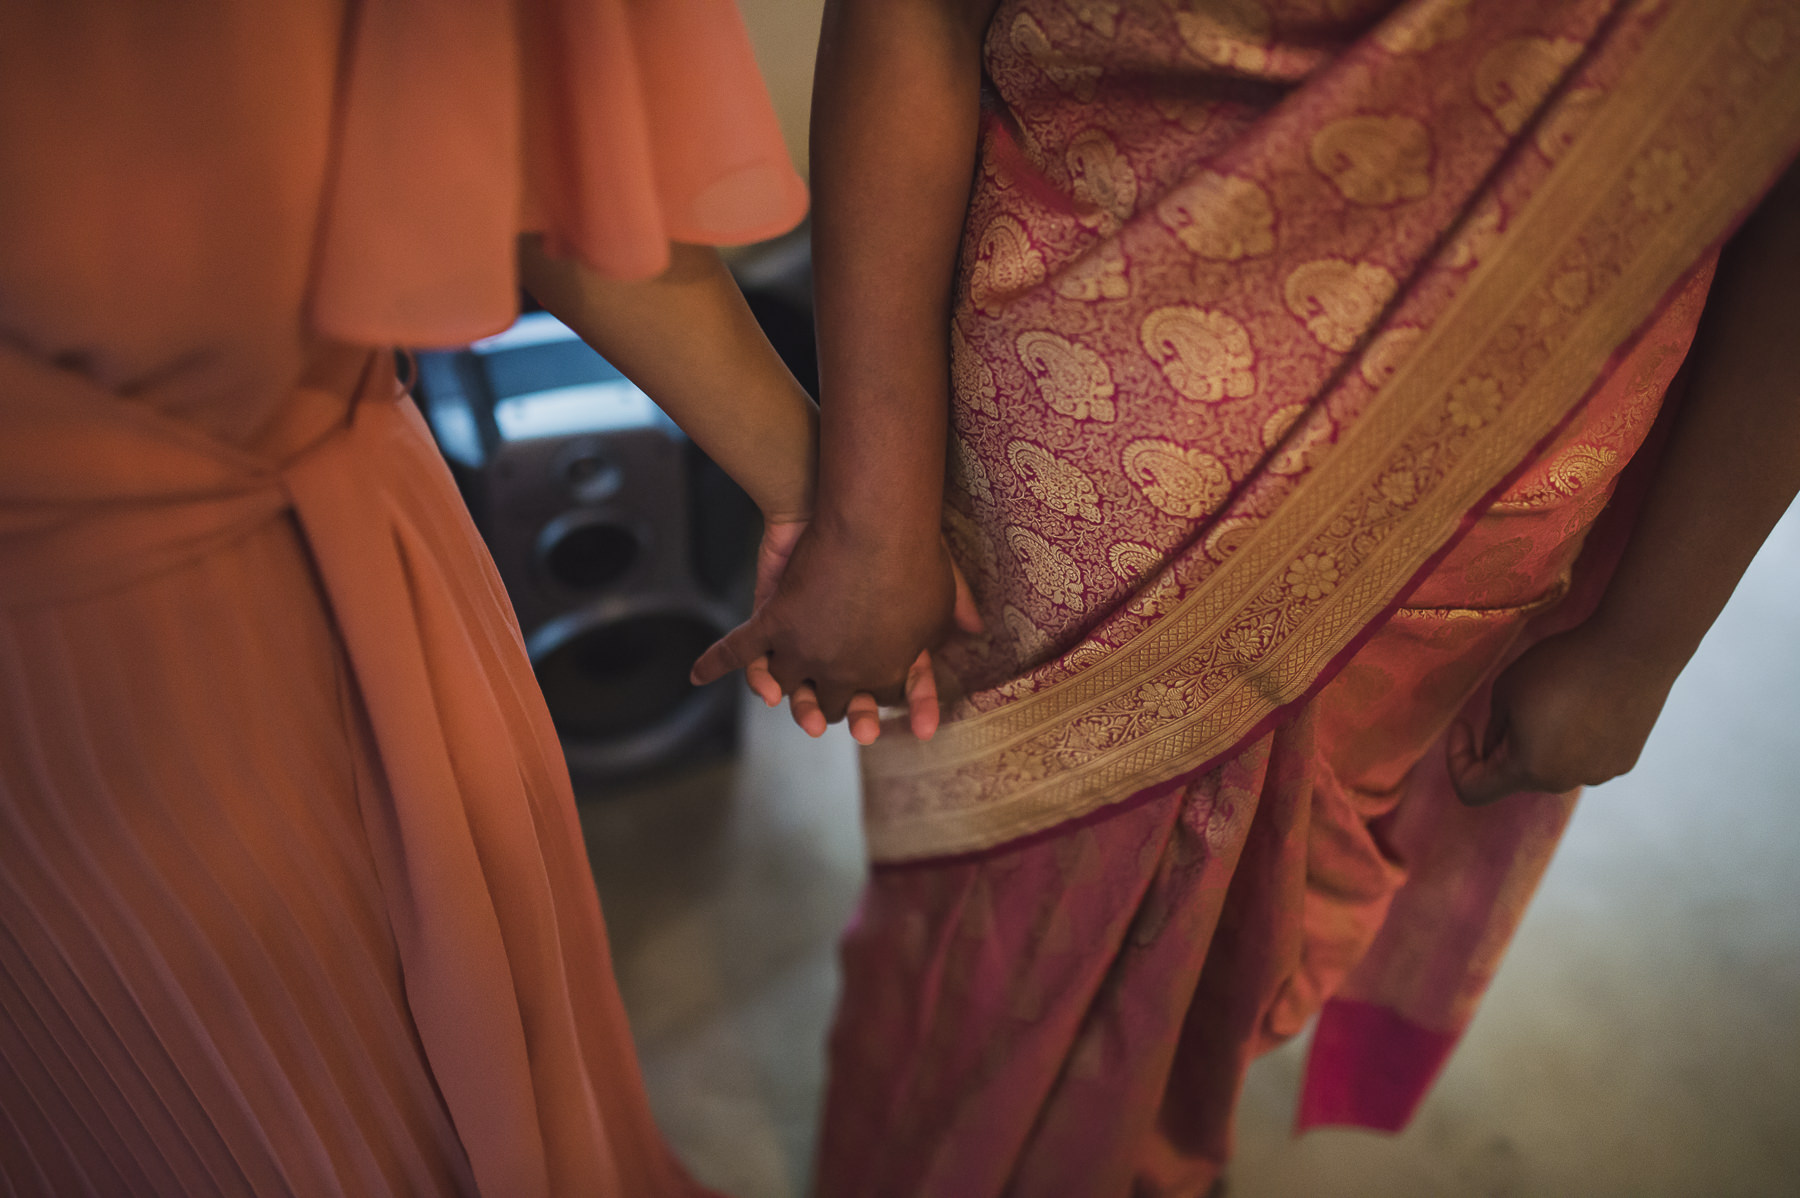 Mum holding hand of bridesmaid for comfort